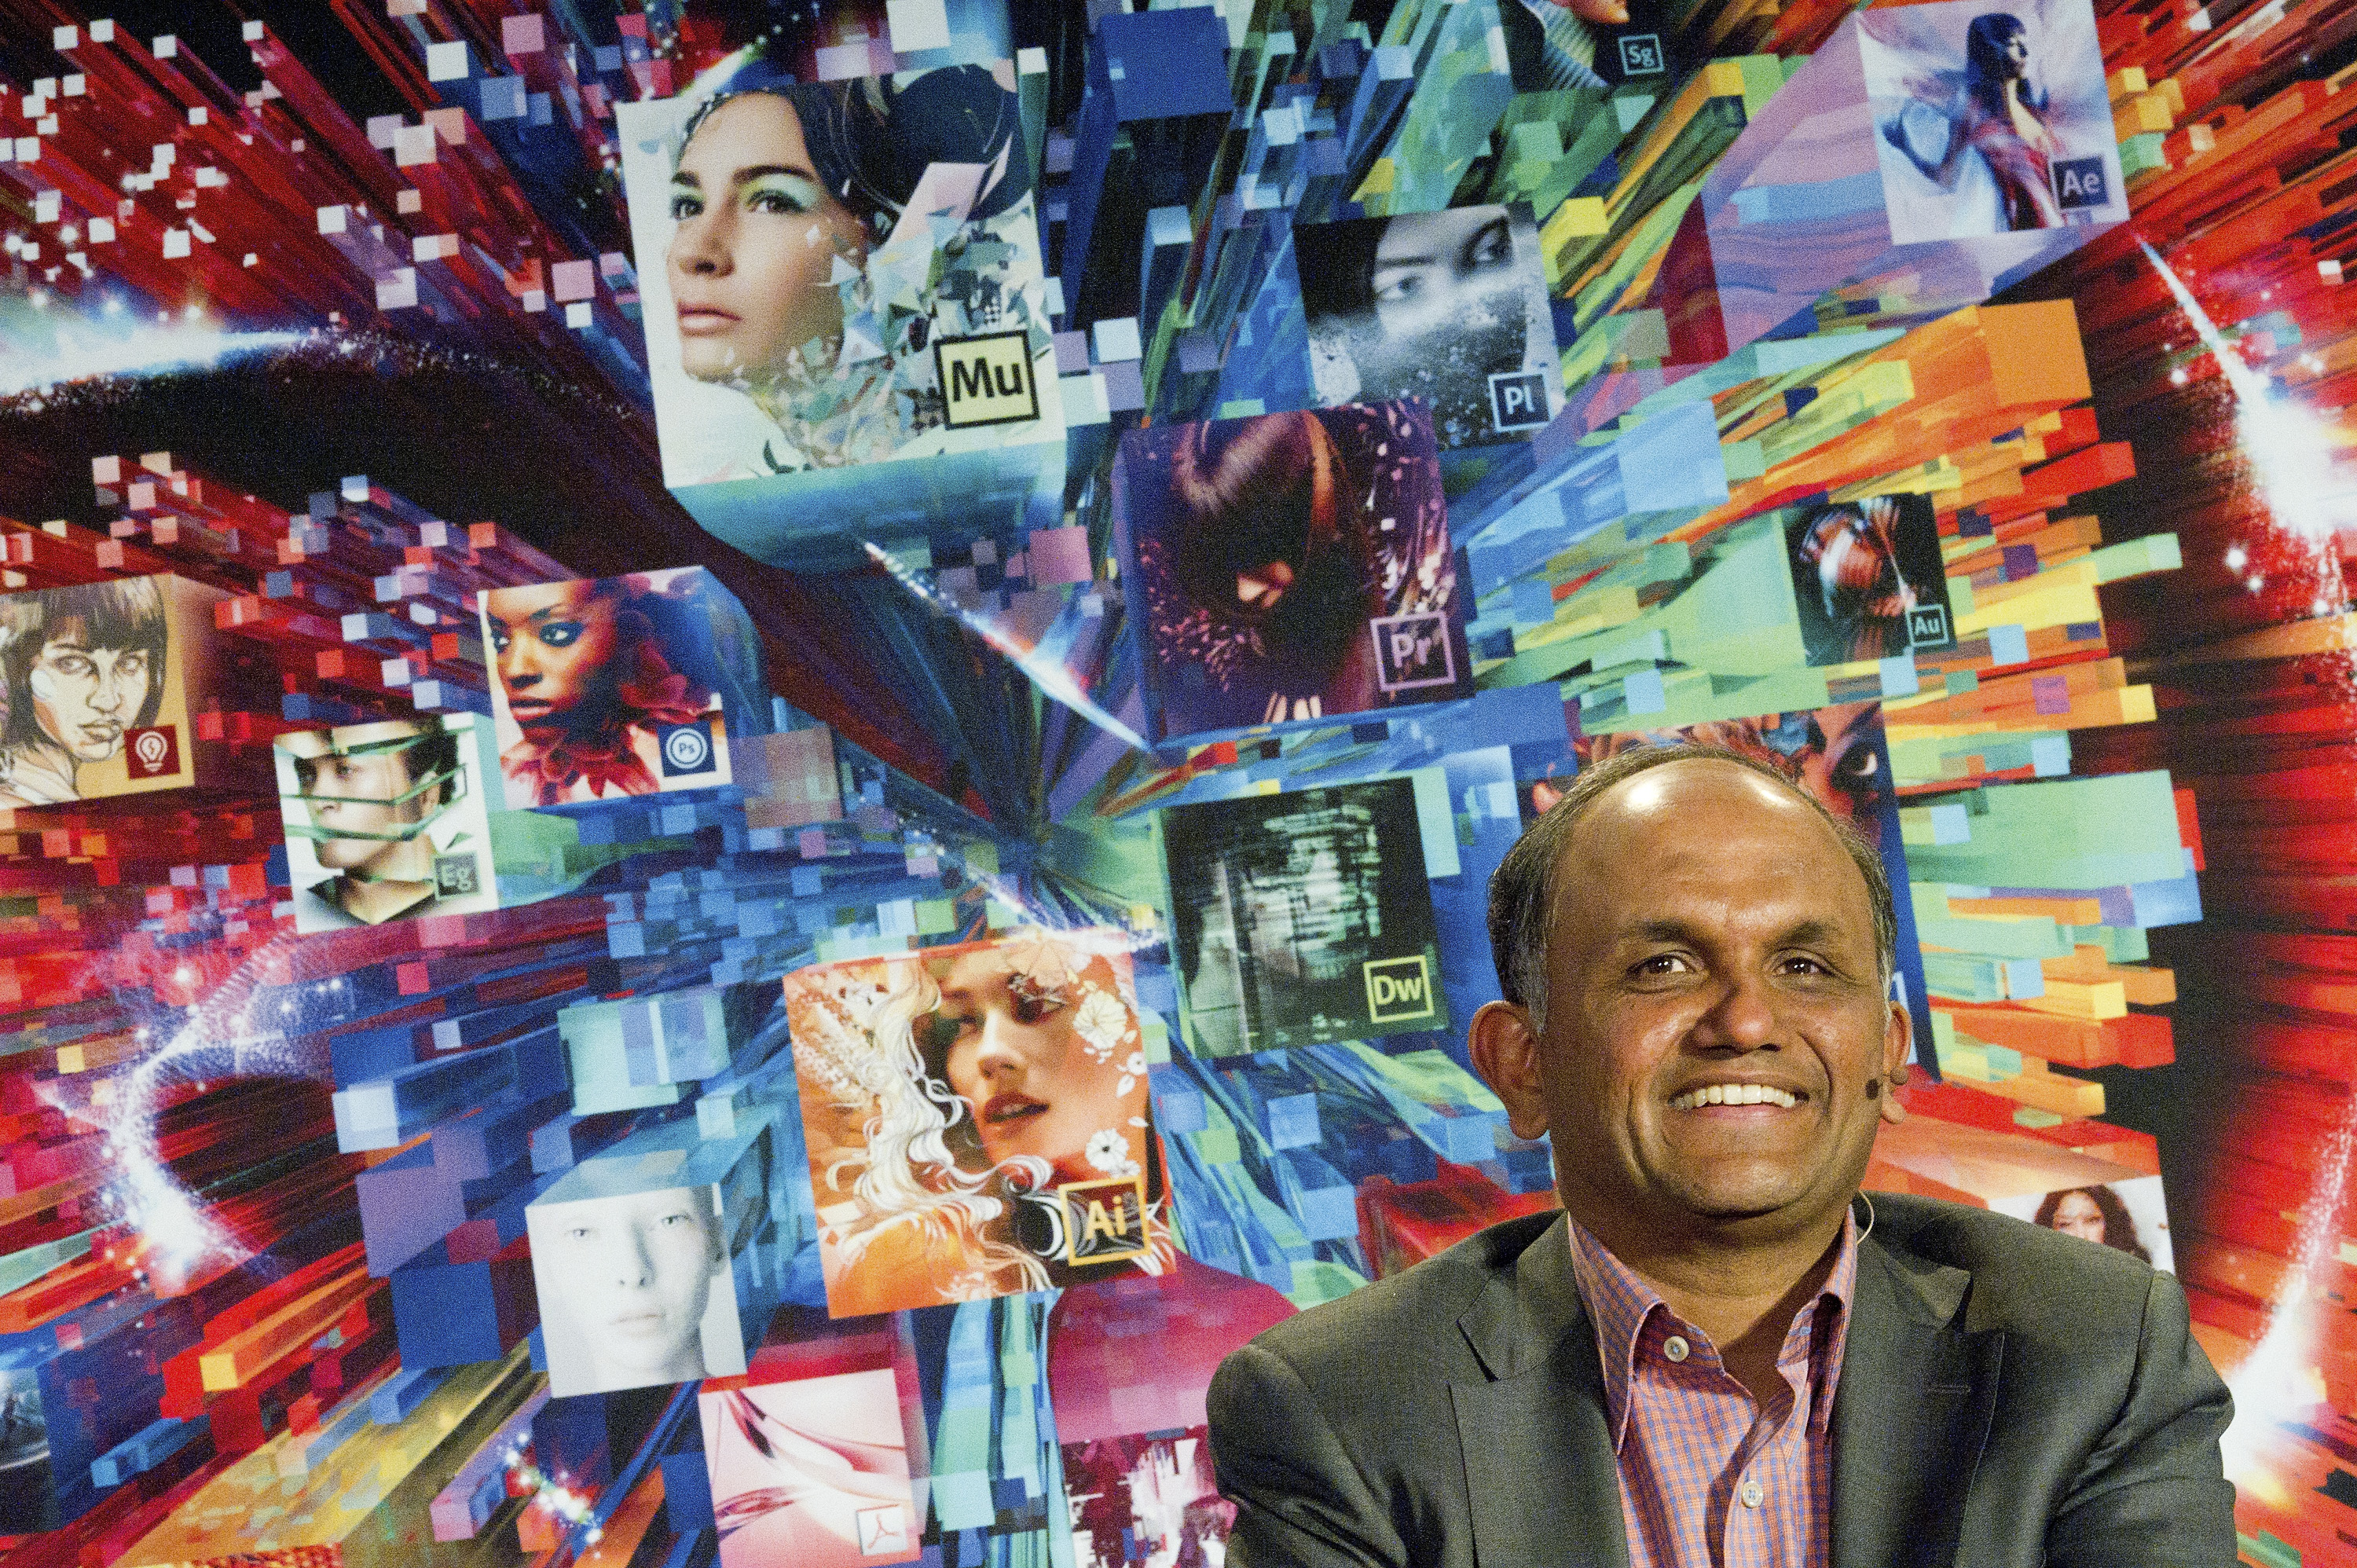 Adobe CEO Shantanu Narayen Launches Creative Suite 6 (CS6)